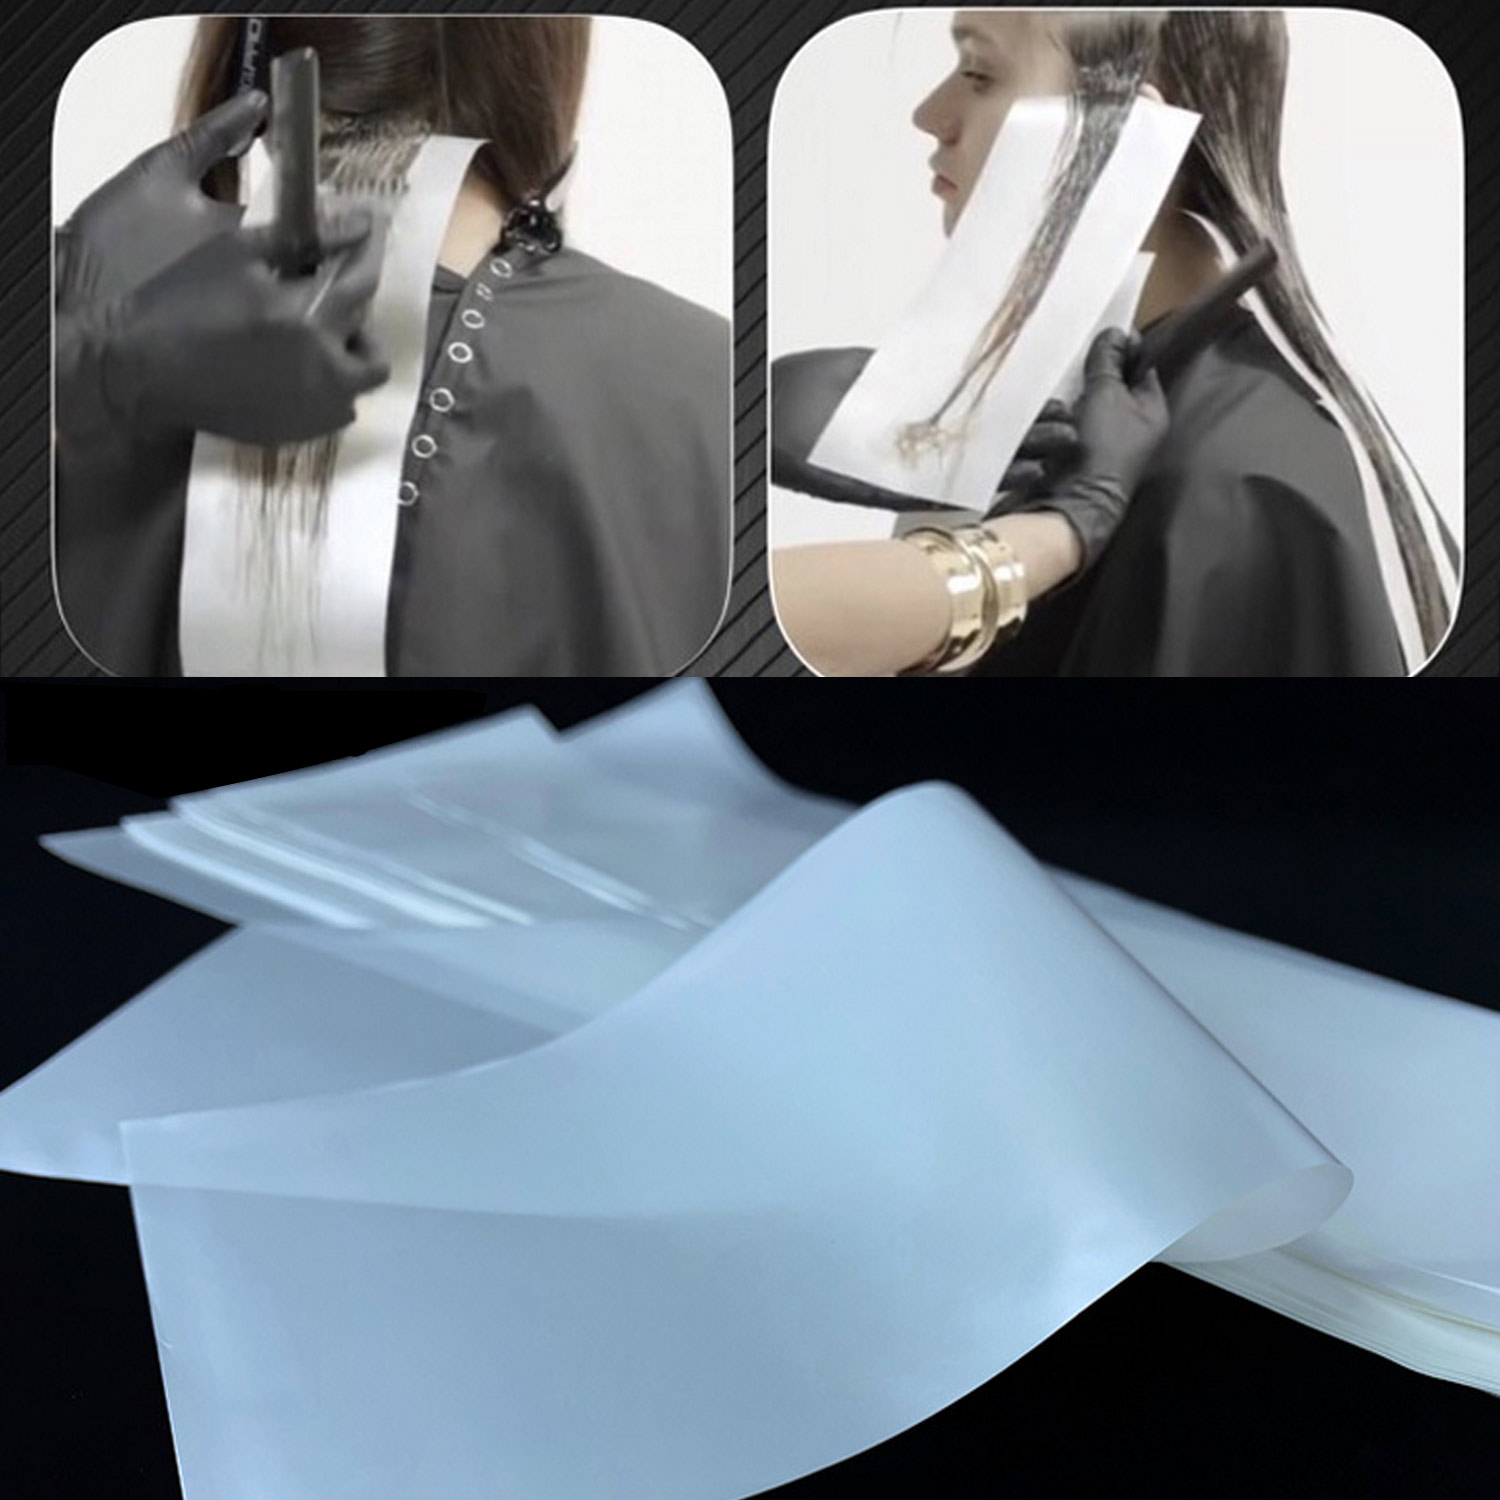 100pcs Hair Dye Paper Reusable Highlight Dyeing Coloring Separating Sheet Paper Salon Barber Tools